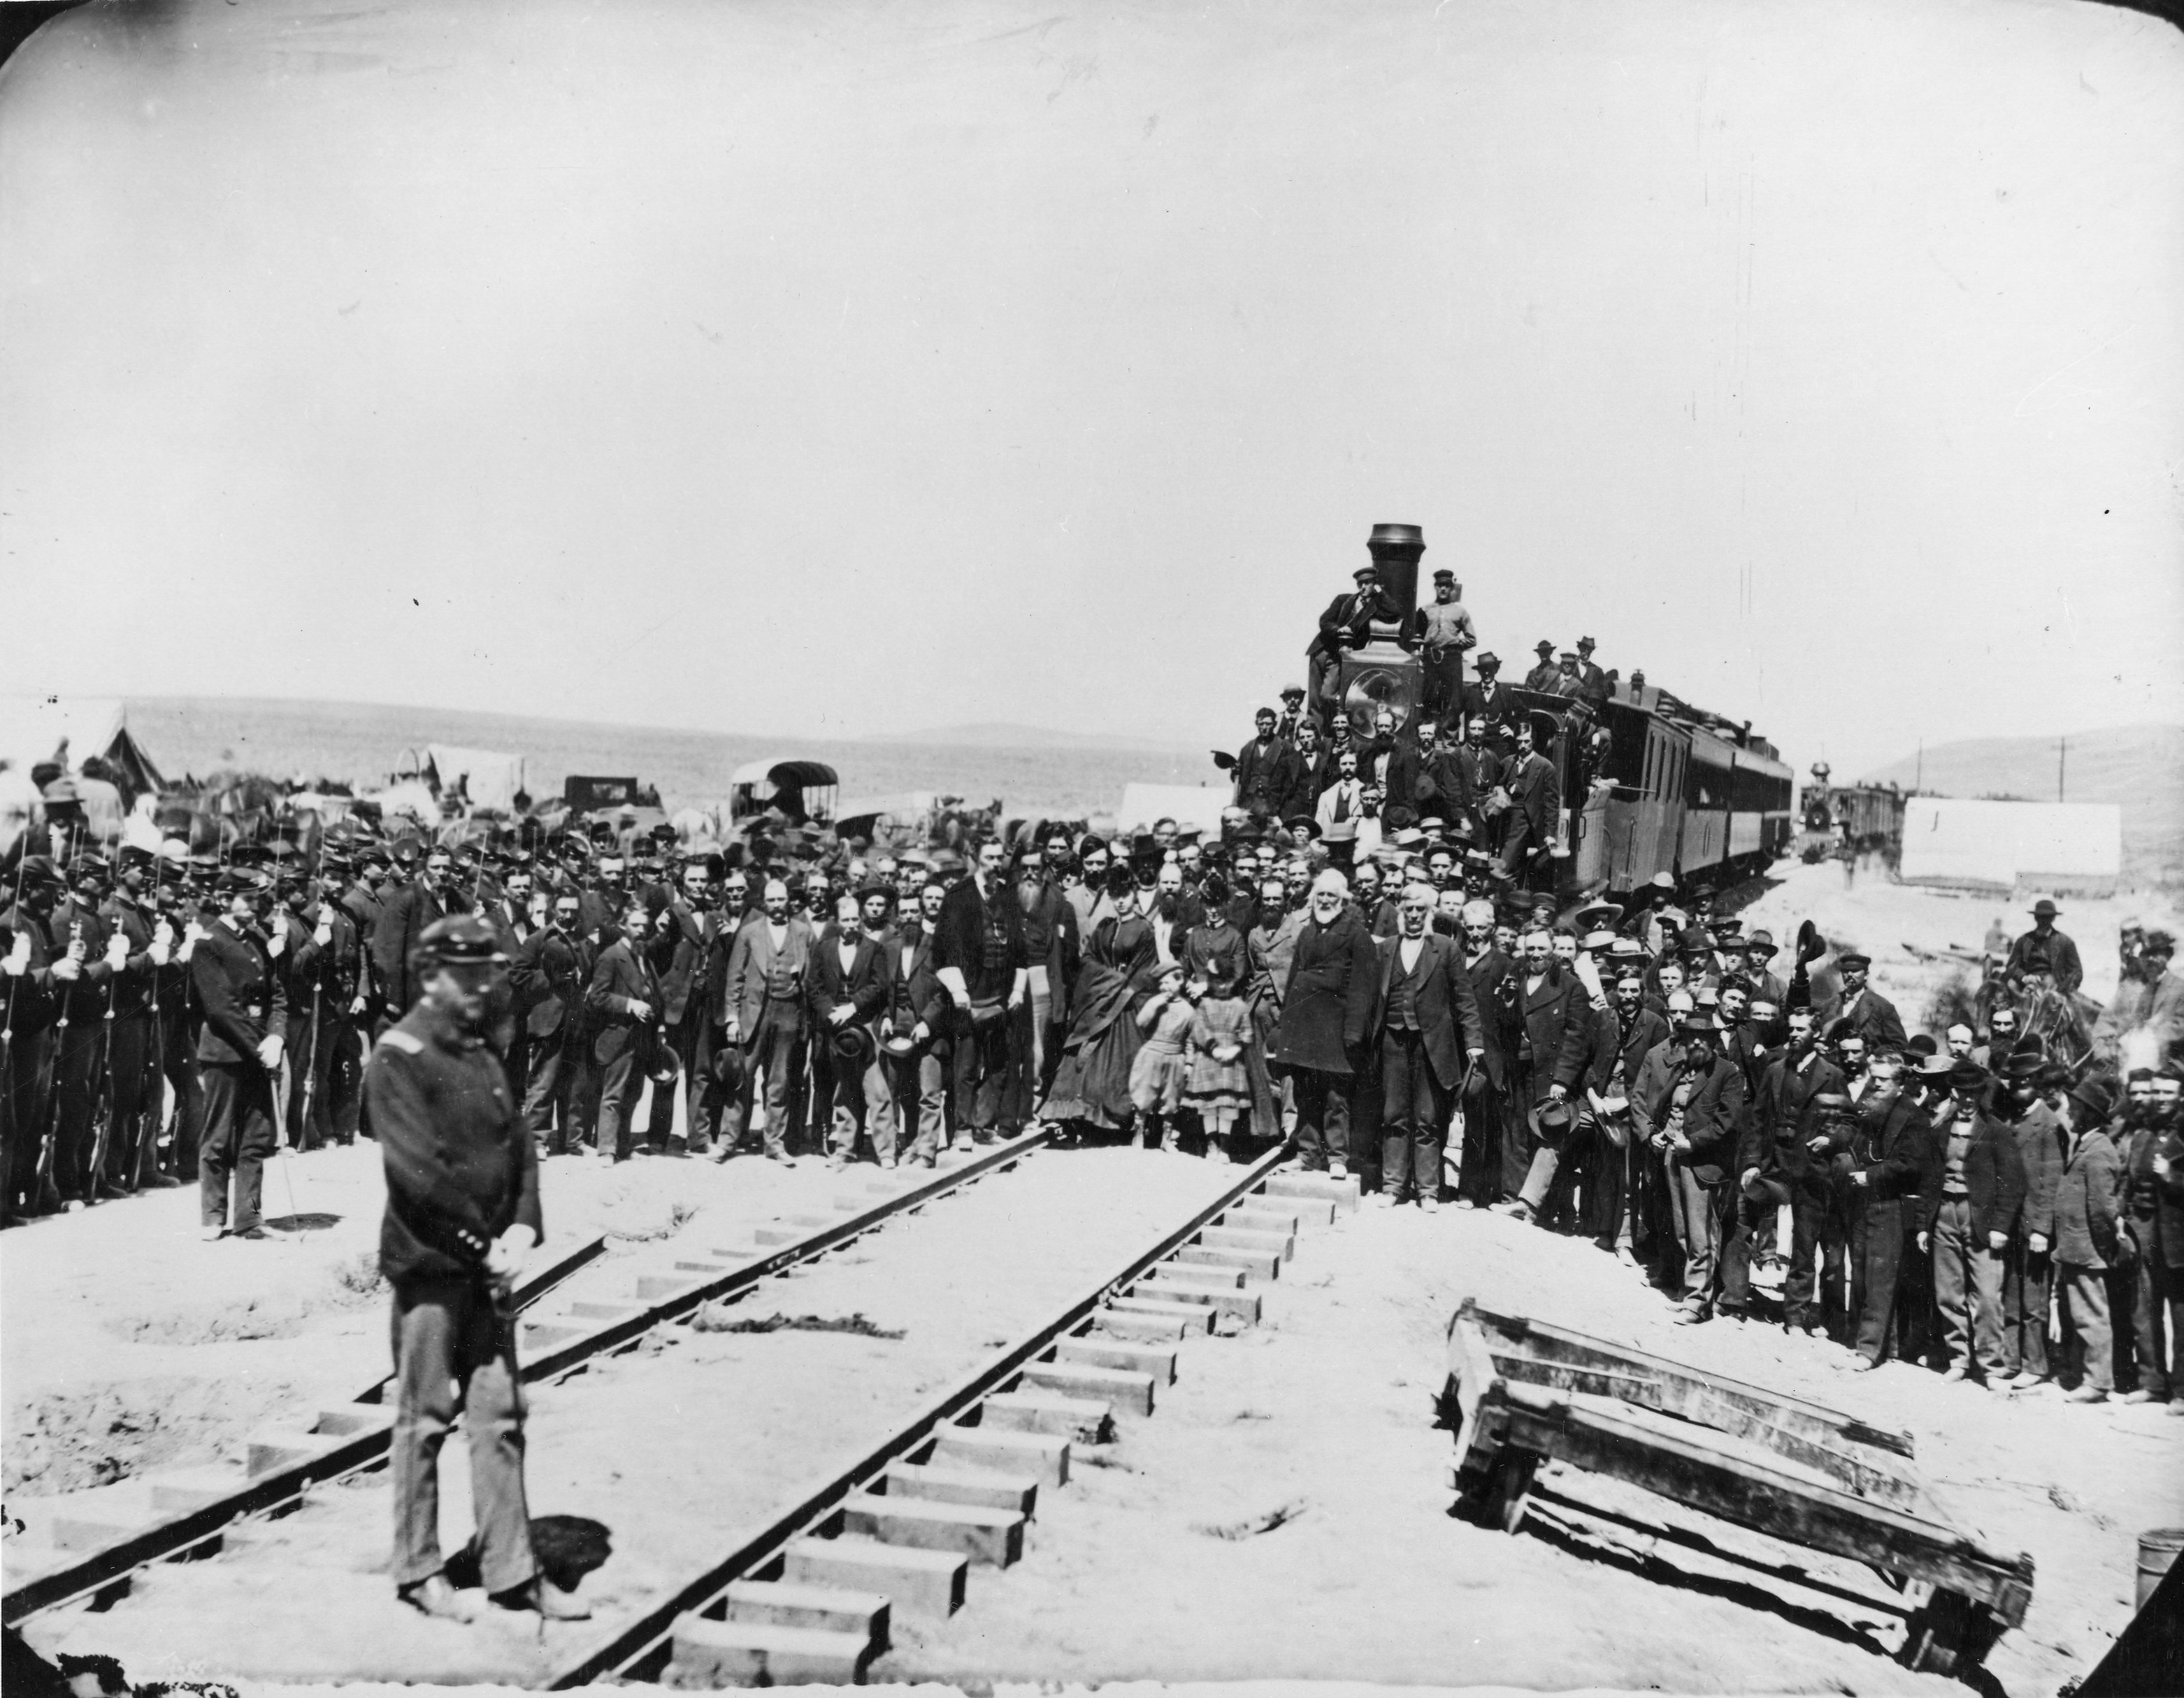 This photo shows a different view of the crowd gathered at Promontory, Utah, on May 10, 1869.